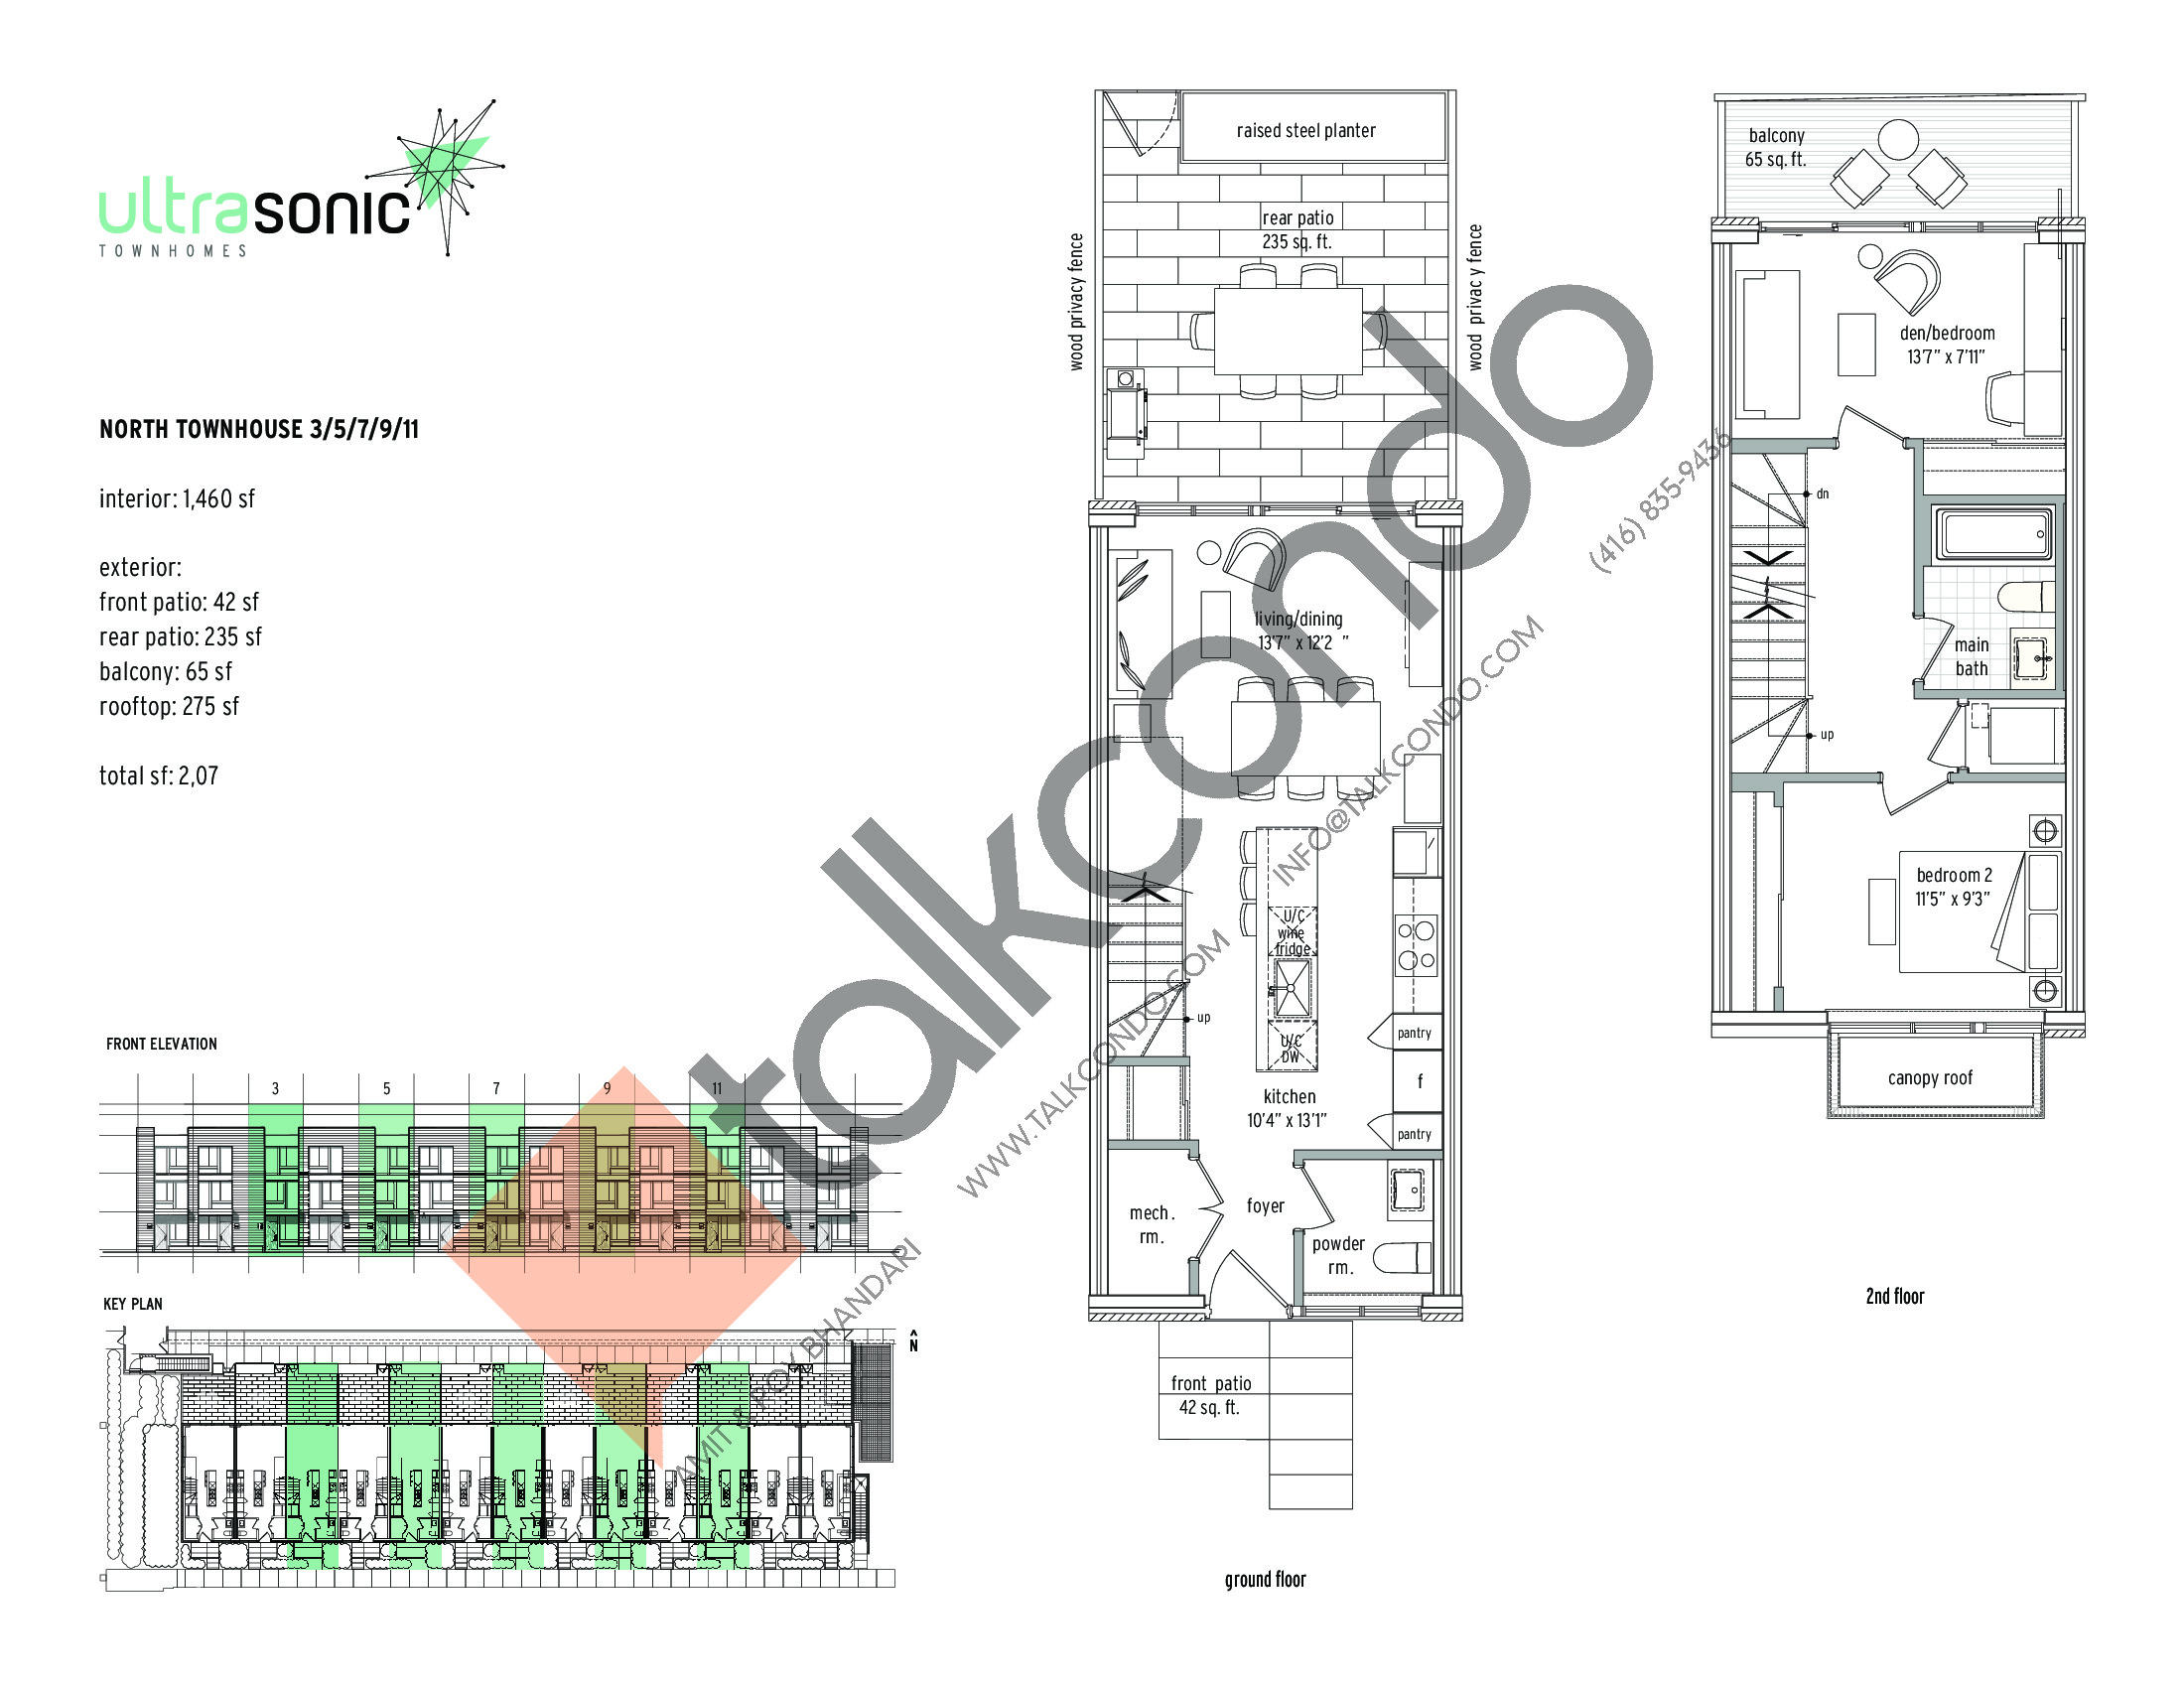 North Townhouse - 3 / 5 / 7 / 9 / 11 (1/2) Floor Plan at UltraSonic Towns - 1460 sq.ft